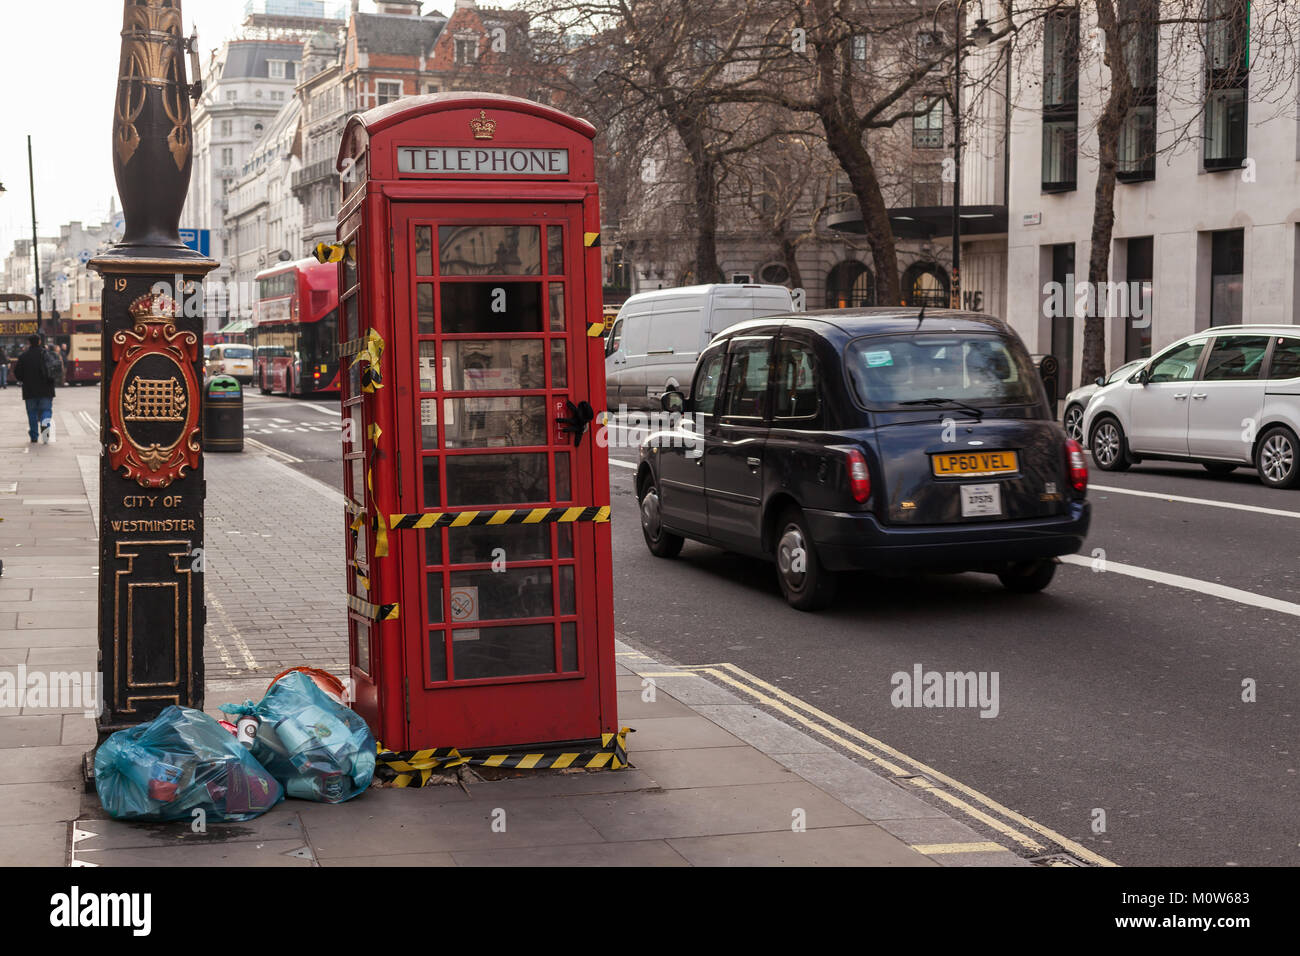 London street with a decommissioned phone box and a black London taxi - Stock Image